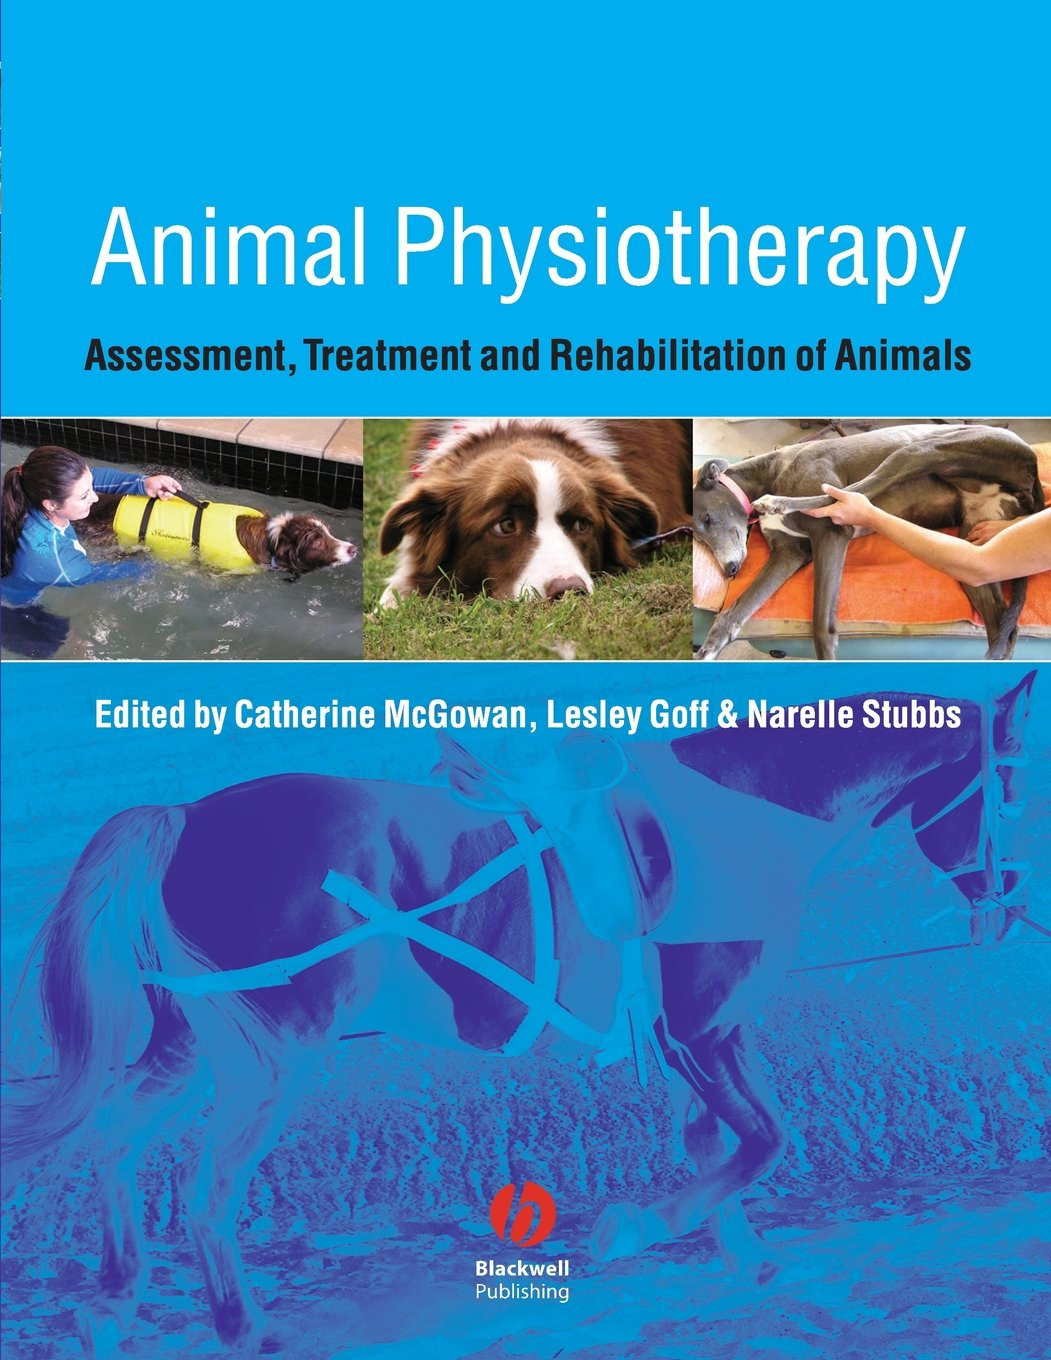 Books on physical therapy - Animal Physiotherapy Assessment Treatment And Rehabilitation Of Animals Catherine Mcgowan Lesley Goff Narelle Stubbs 9781405131957 Physical Medicine